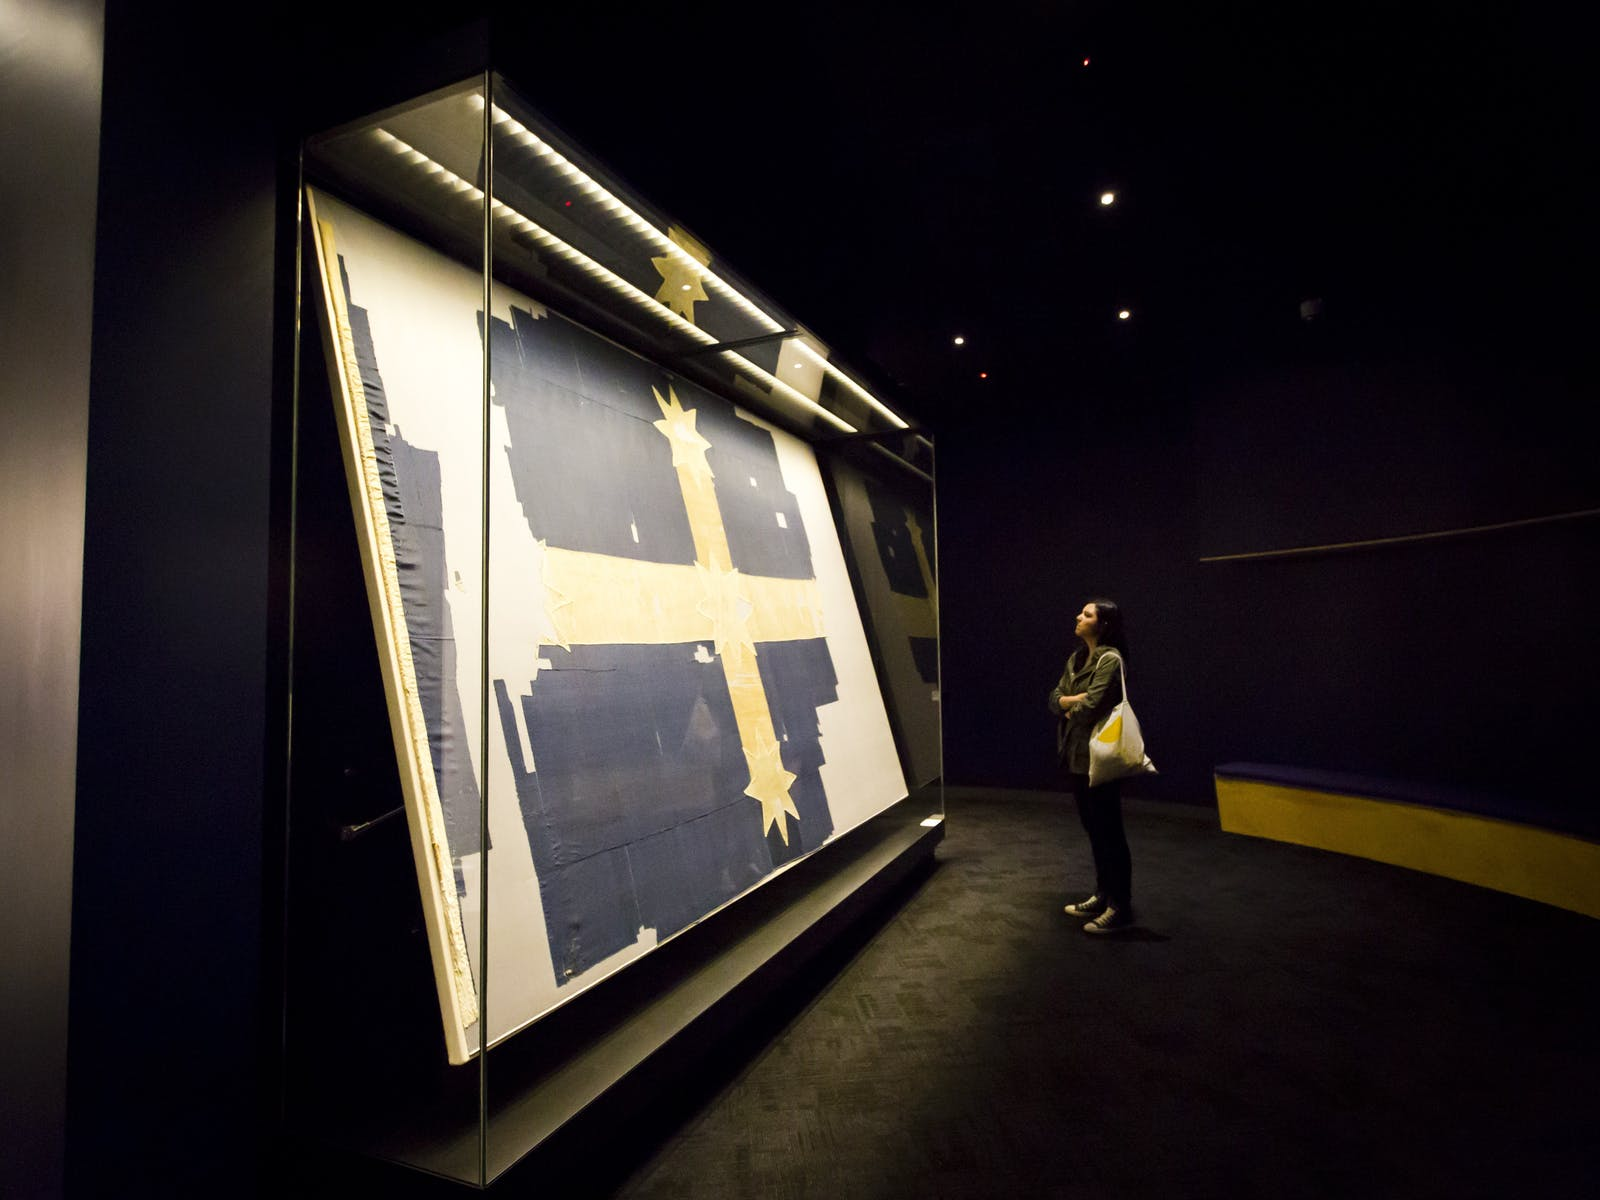 The original Flag of the Southern Cross (the Eureka Flag) from 1854, on display in a purpose built gallery